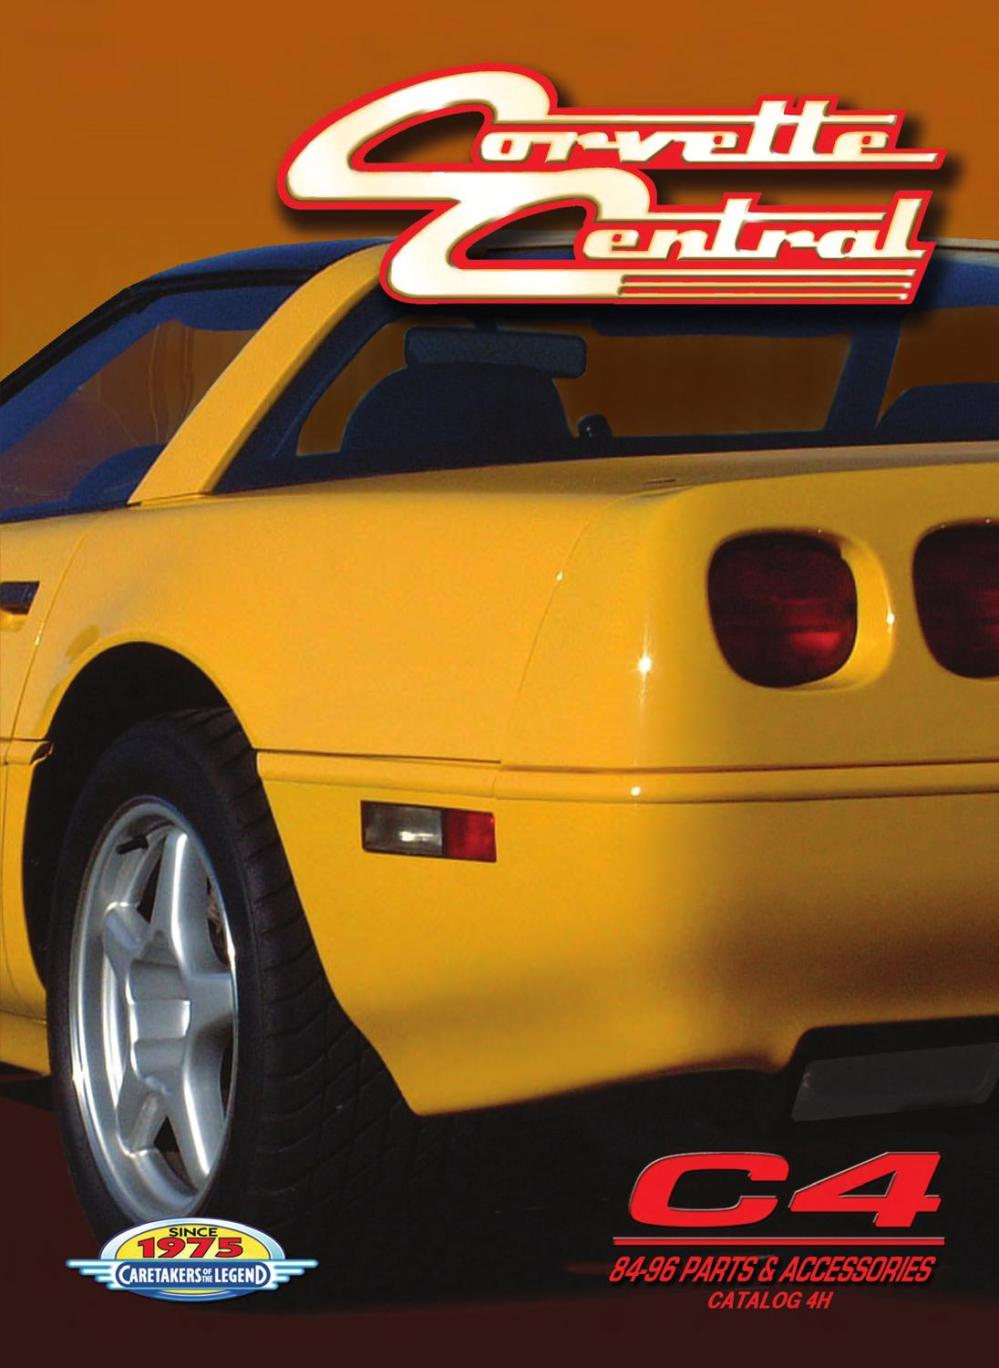 medium resolution of corvette central c4 84 96 corvette parts catalog by corvette central issuu